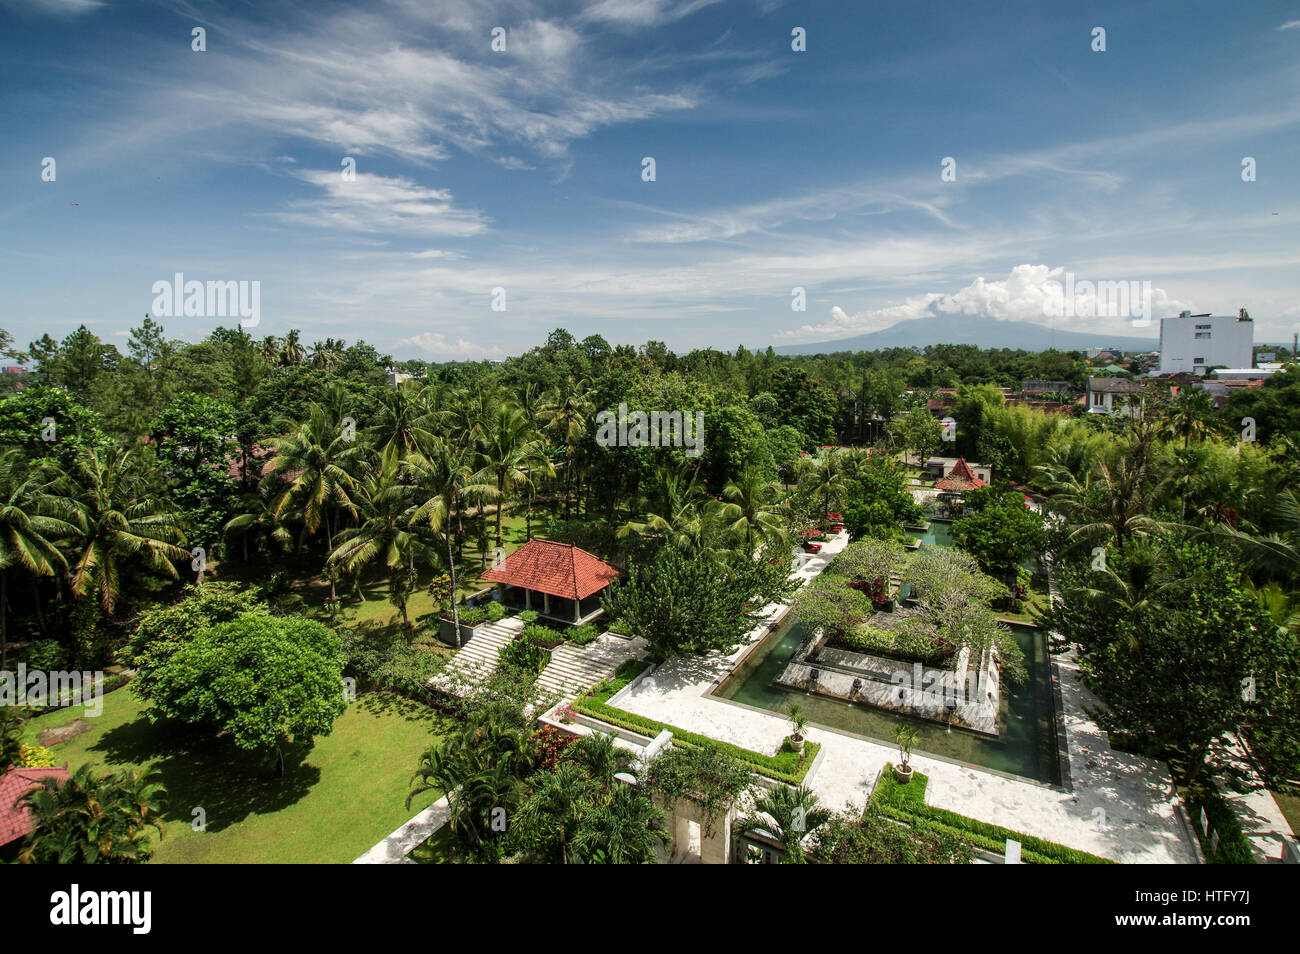 Cloud covered volcanoes Mount Merapi and Mount Sumbing seen from a hotel balcony in central Yogyakarta, Indonesia - Stock Image